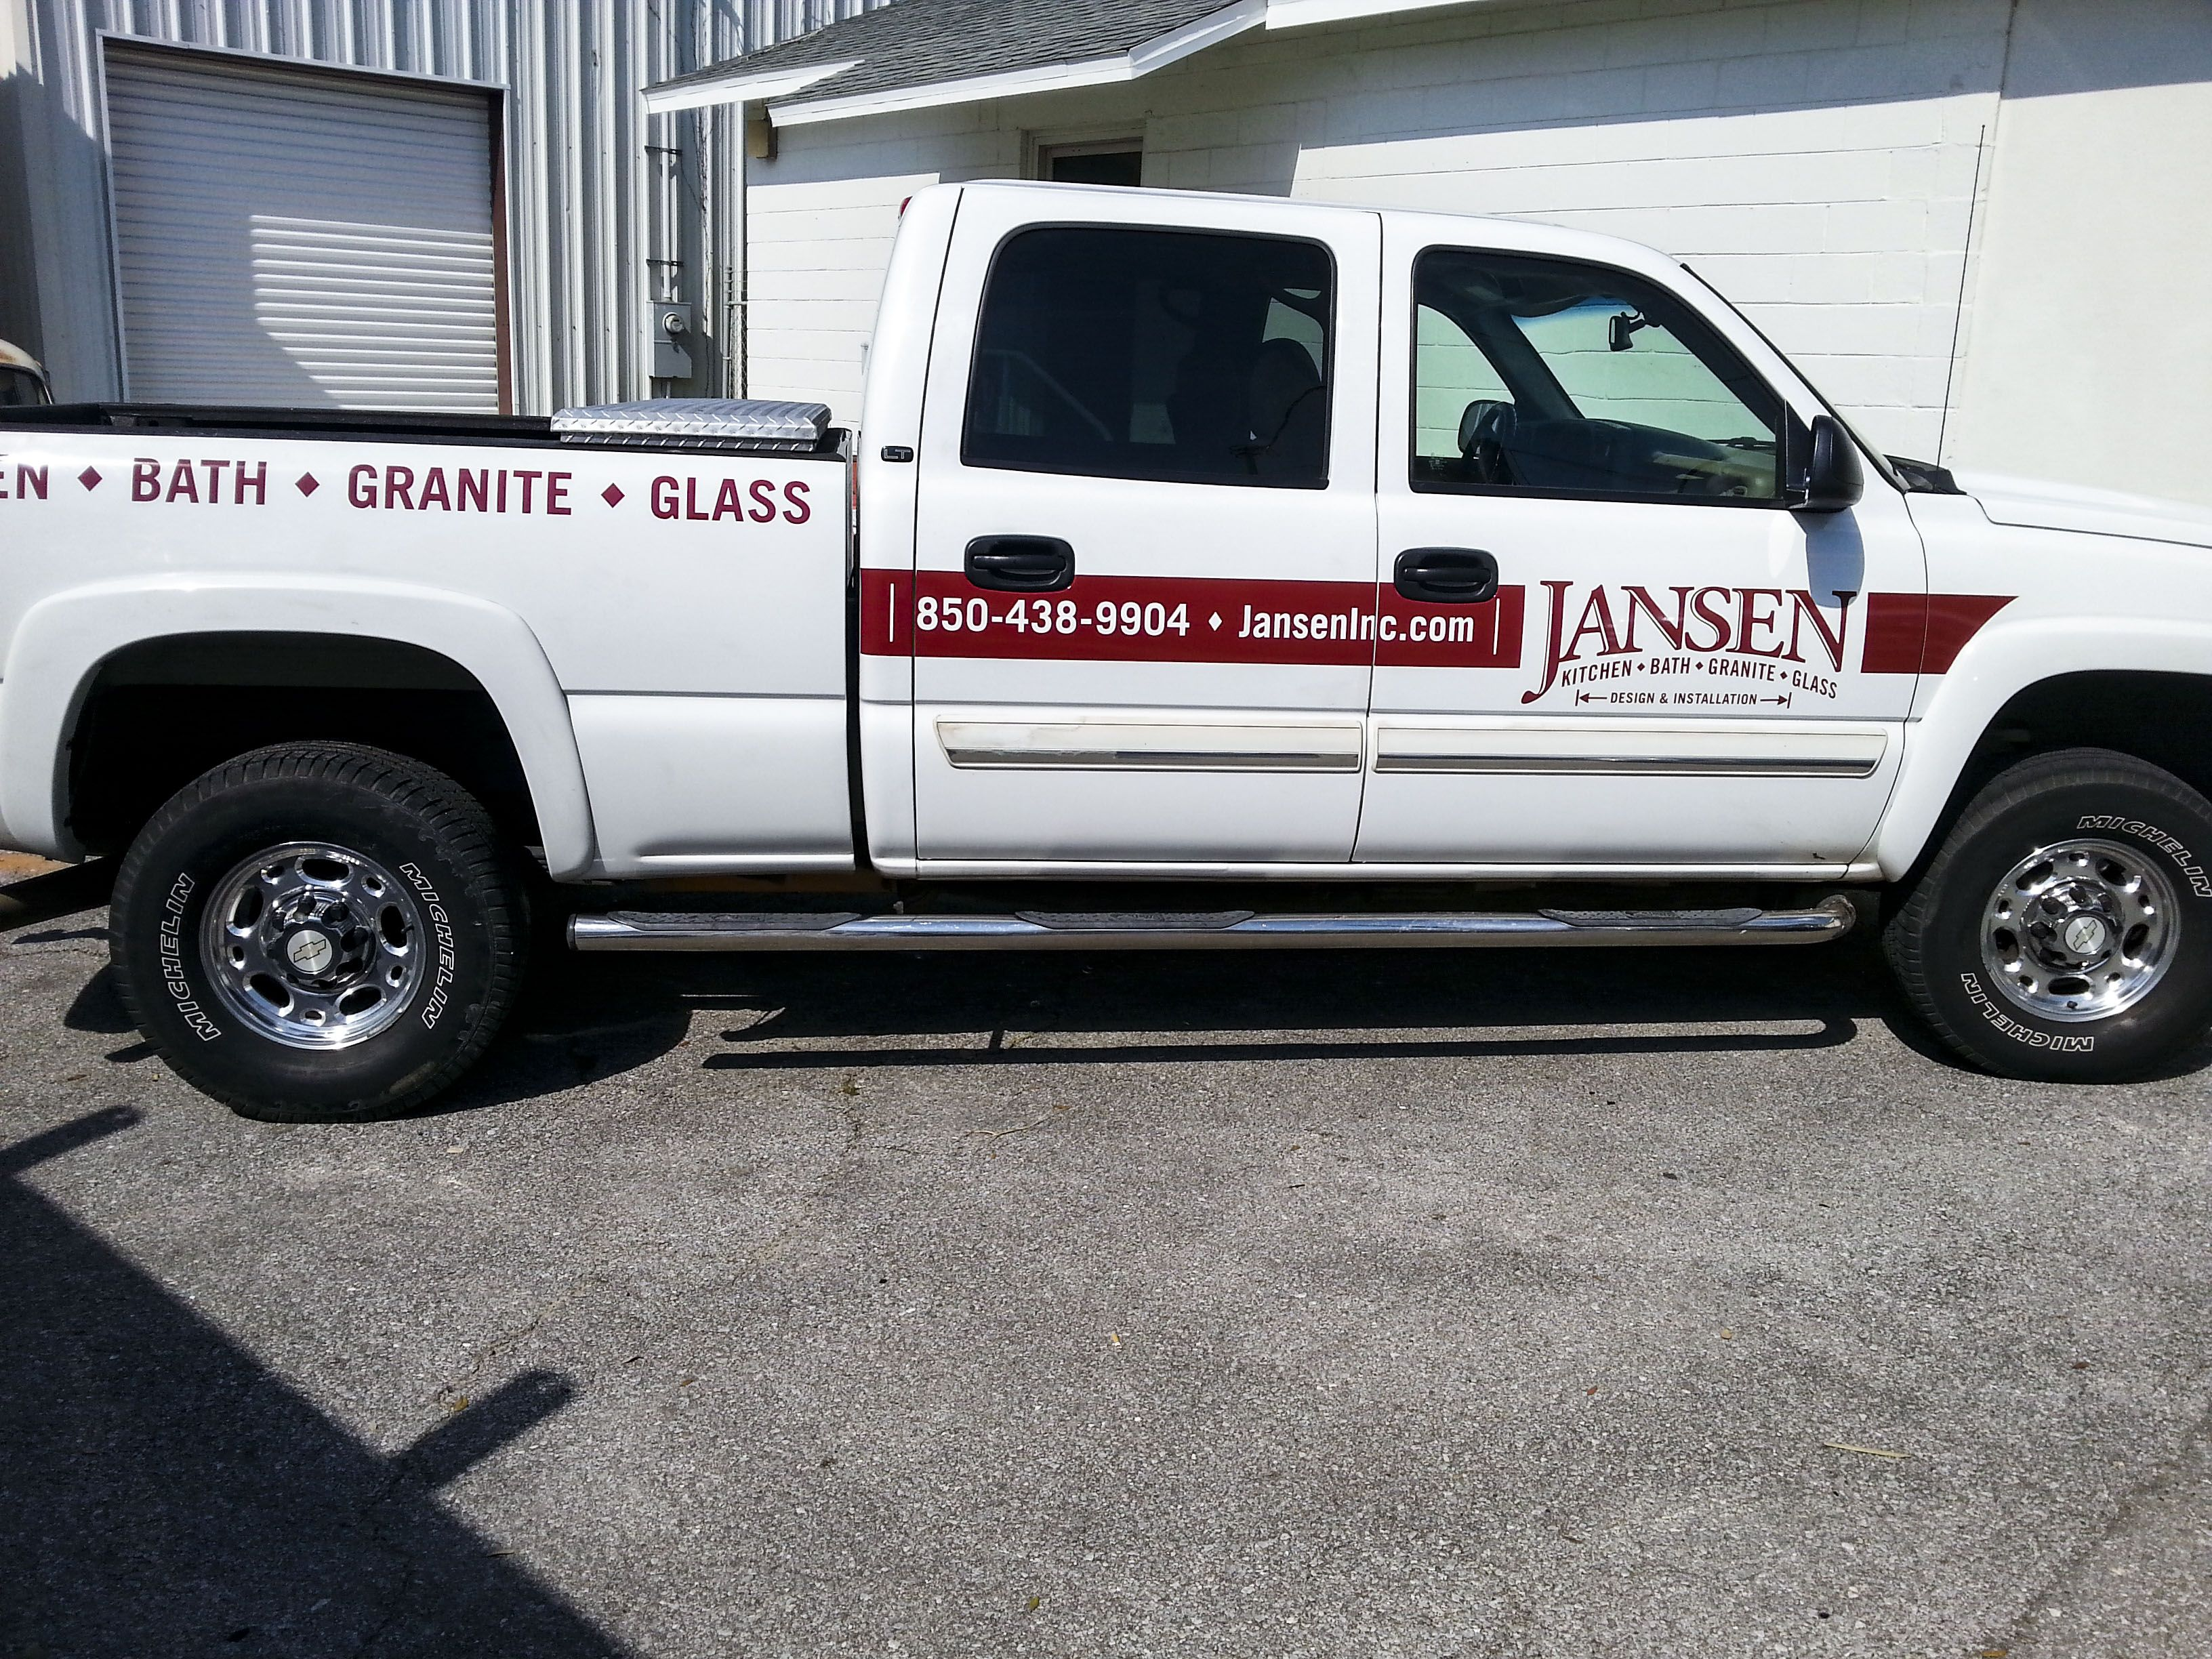 Truck graphics for Jansen by Pensacola Sign in Pensacola Florida